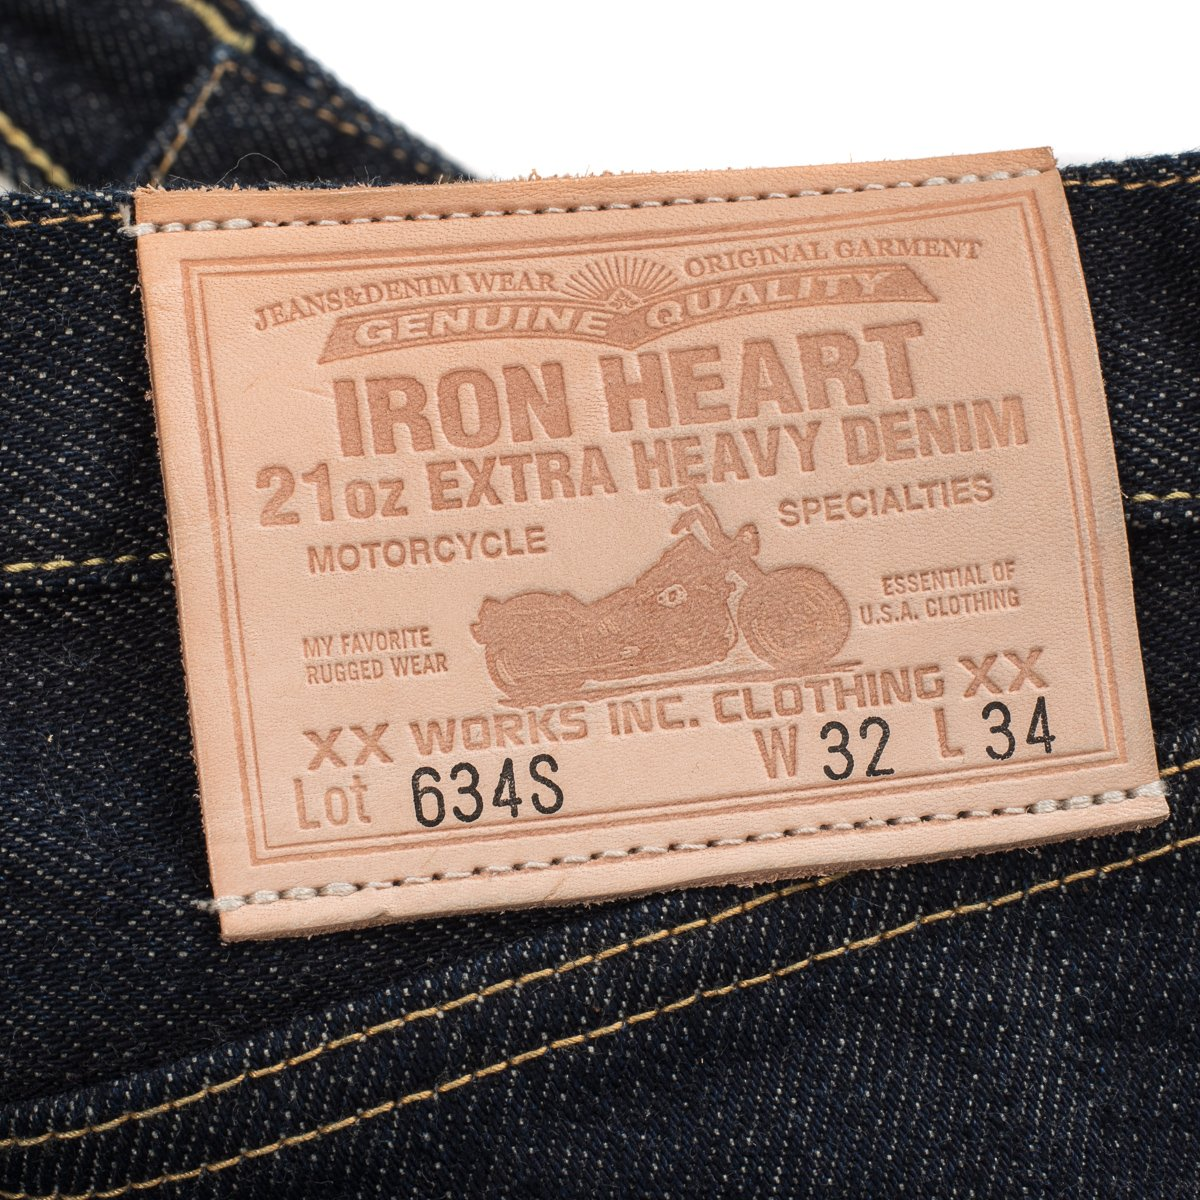 Iron Heart - 634S Indigo 21oz